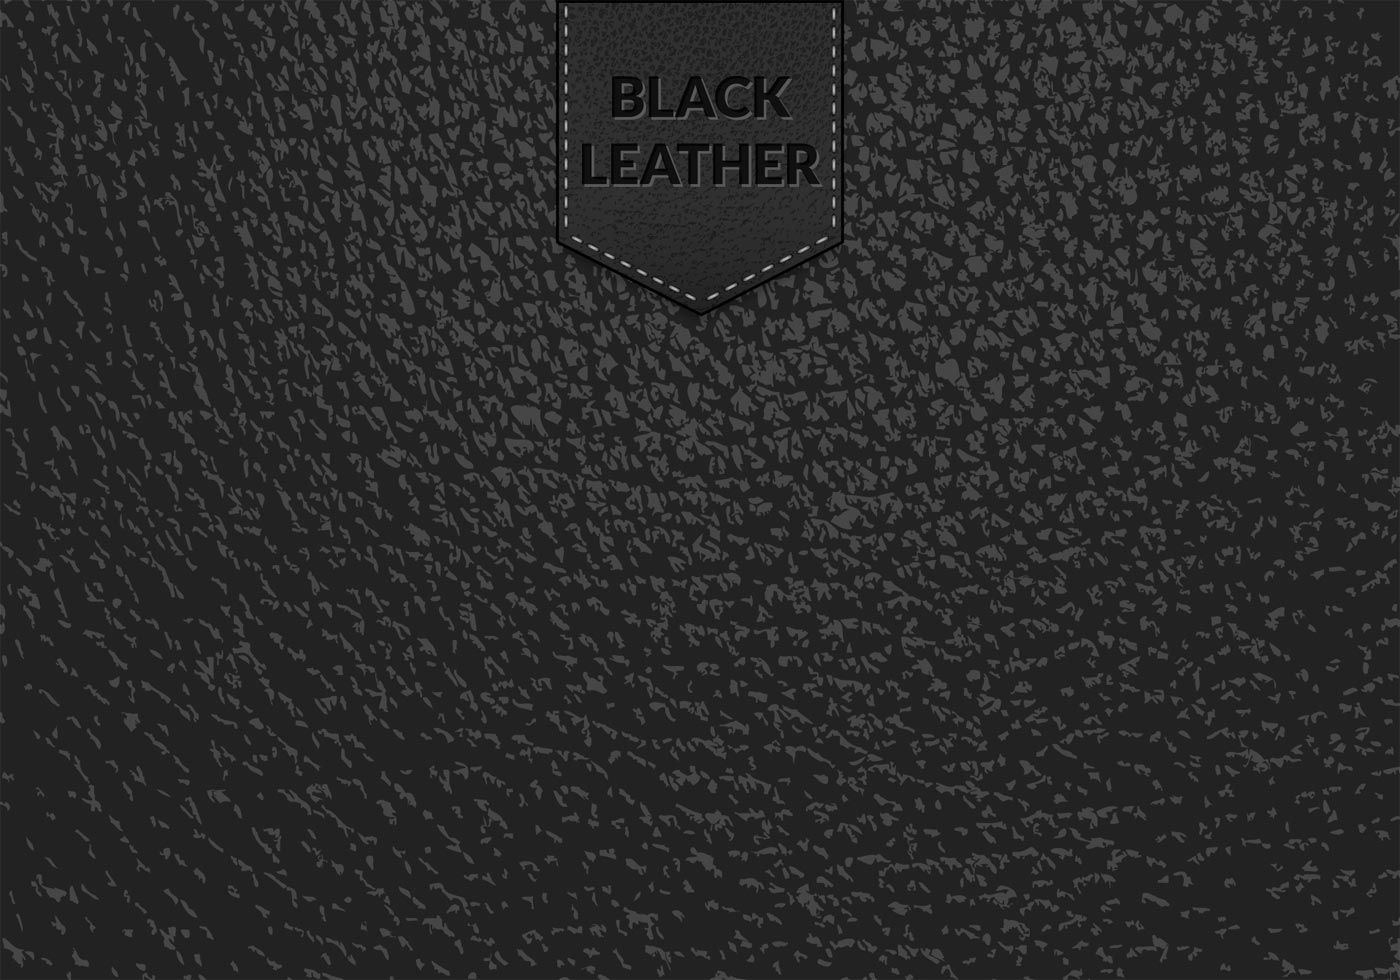 Free Black Leather Vector Background Vector background